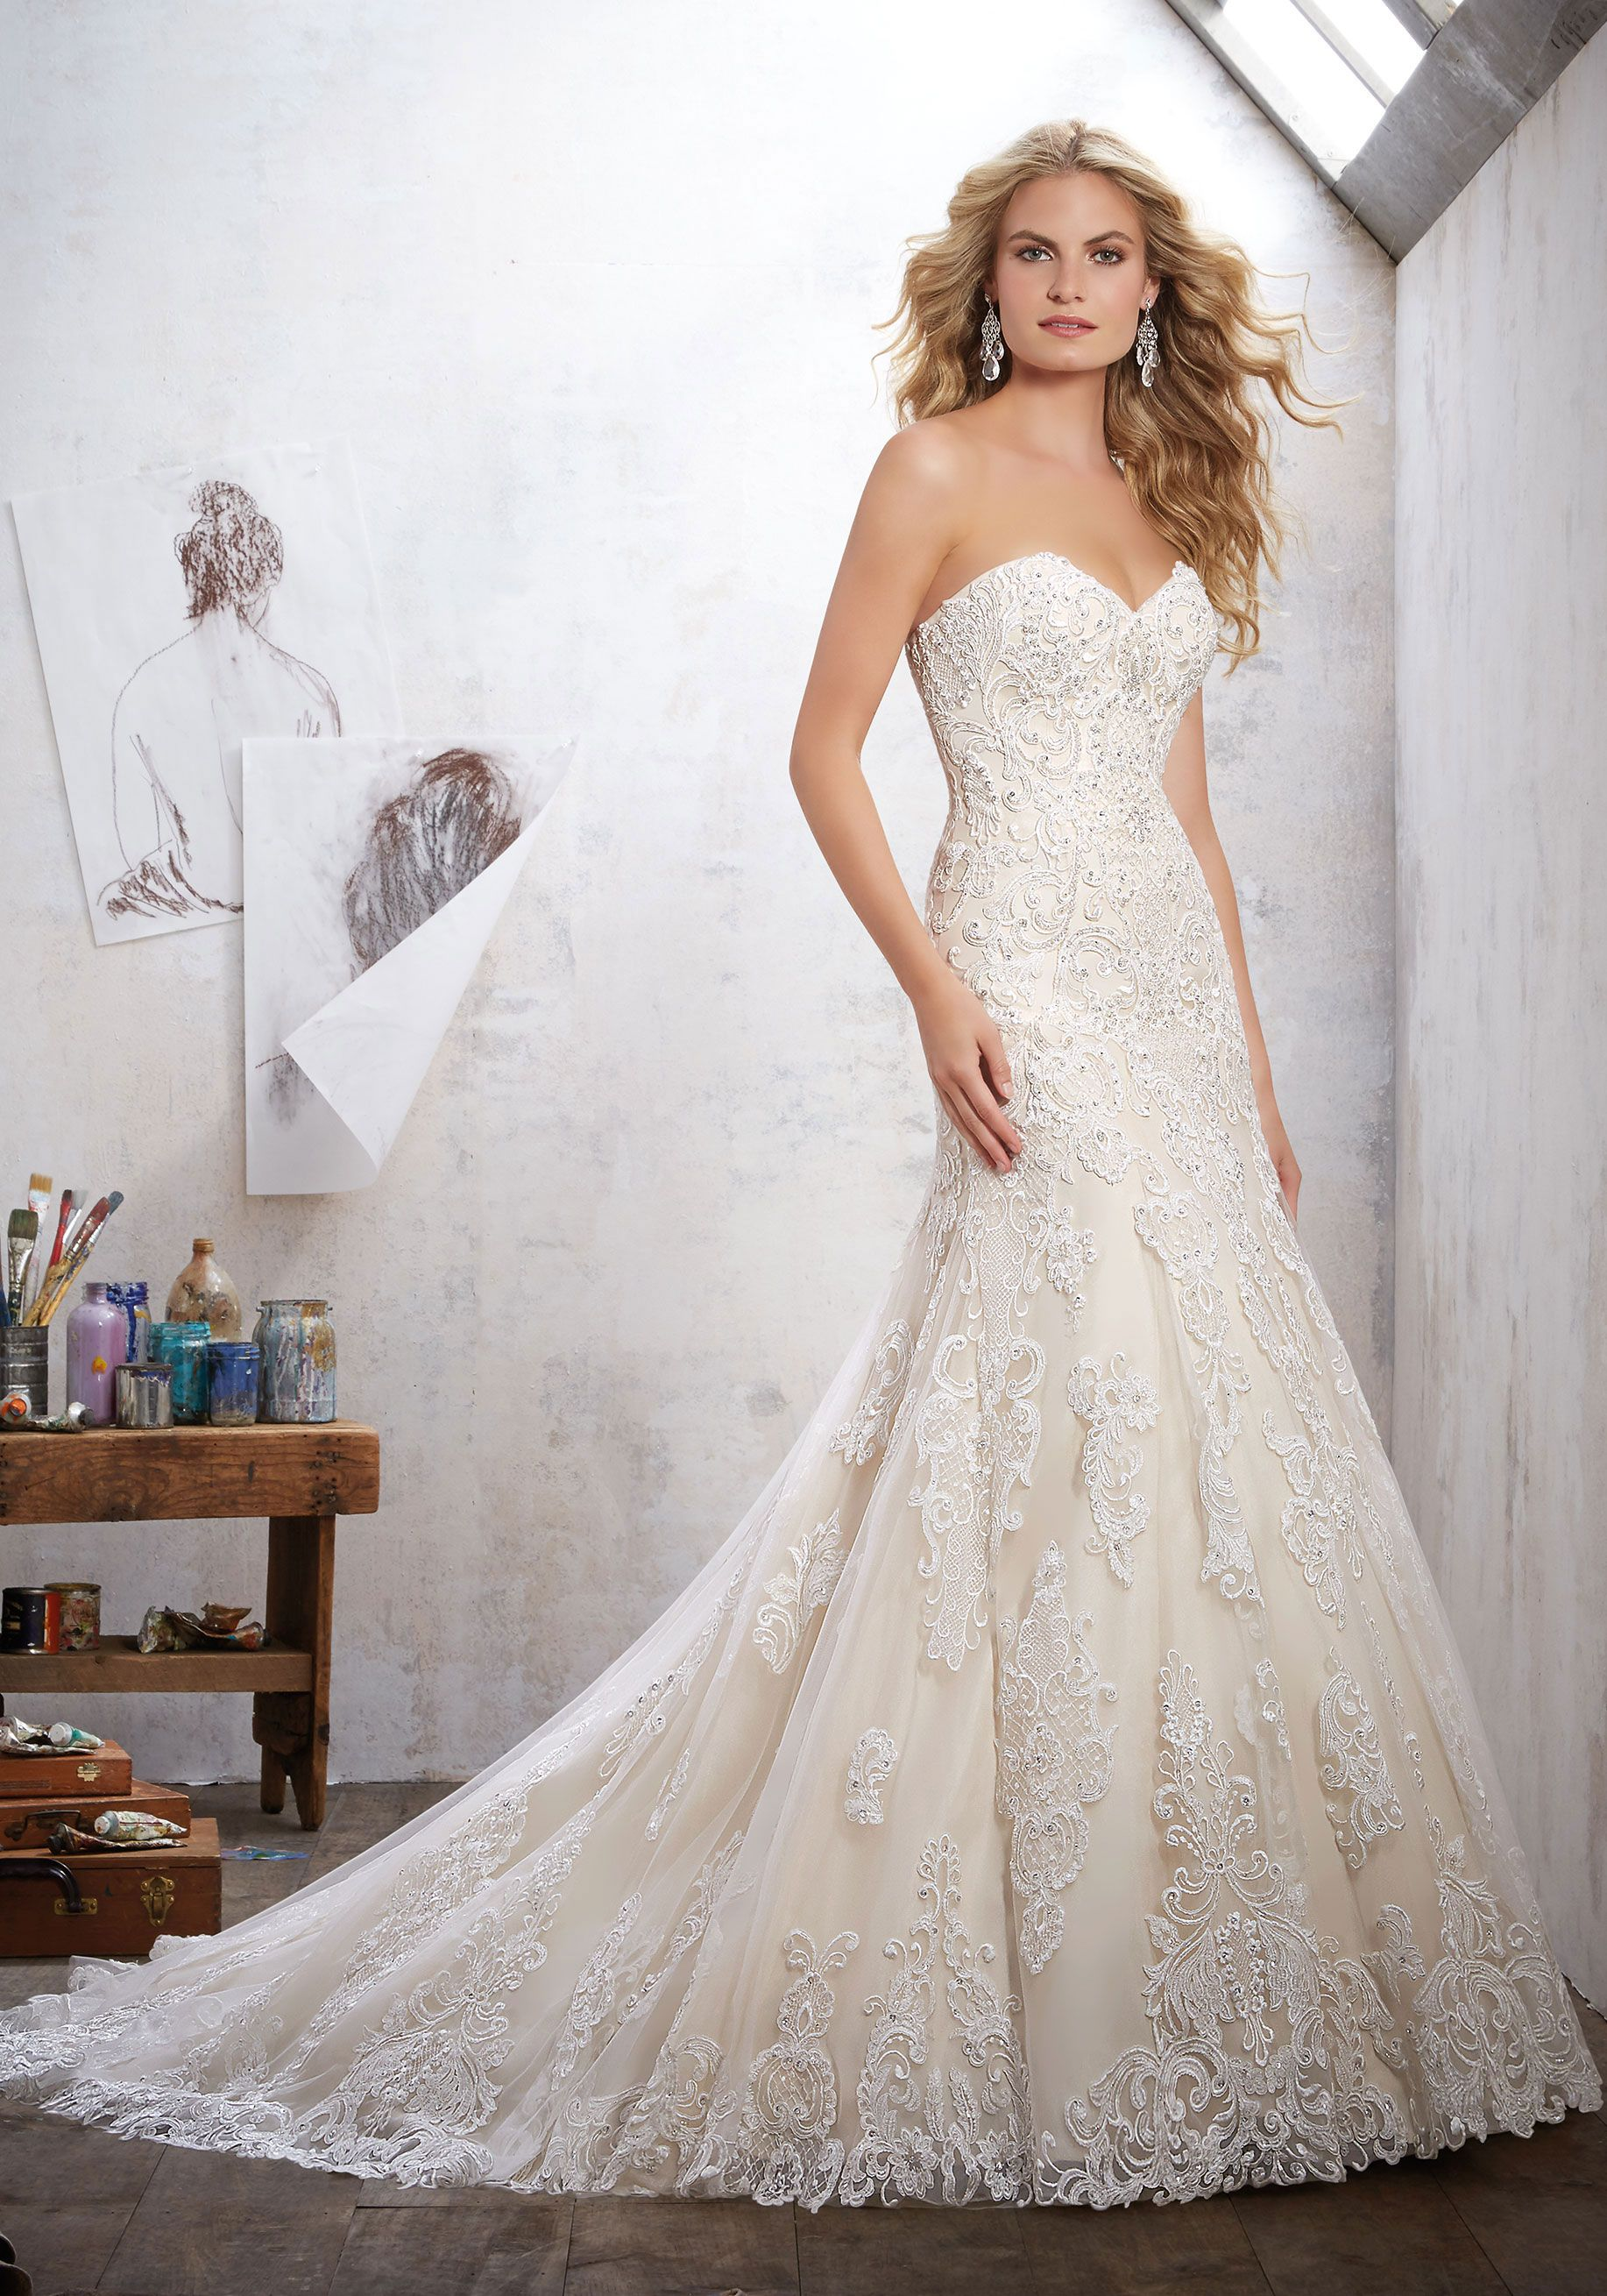 Strapless bridal gown featuring a sweetheart neckline and for Wedding dress trim beading